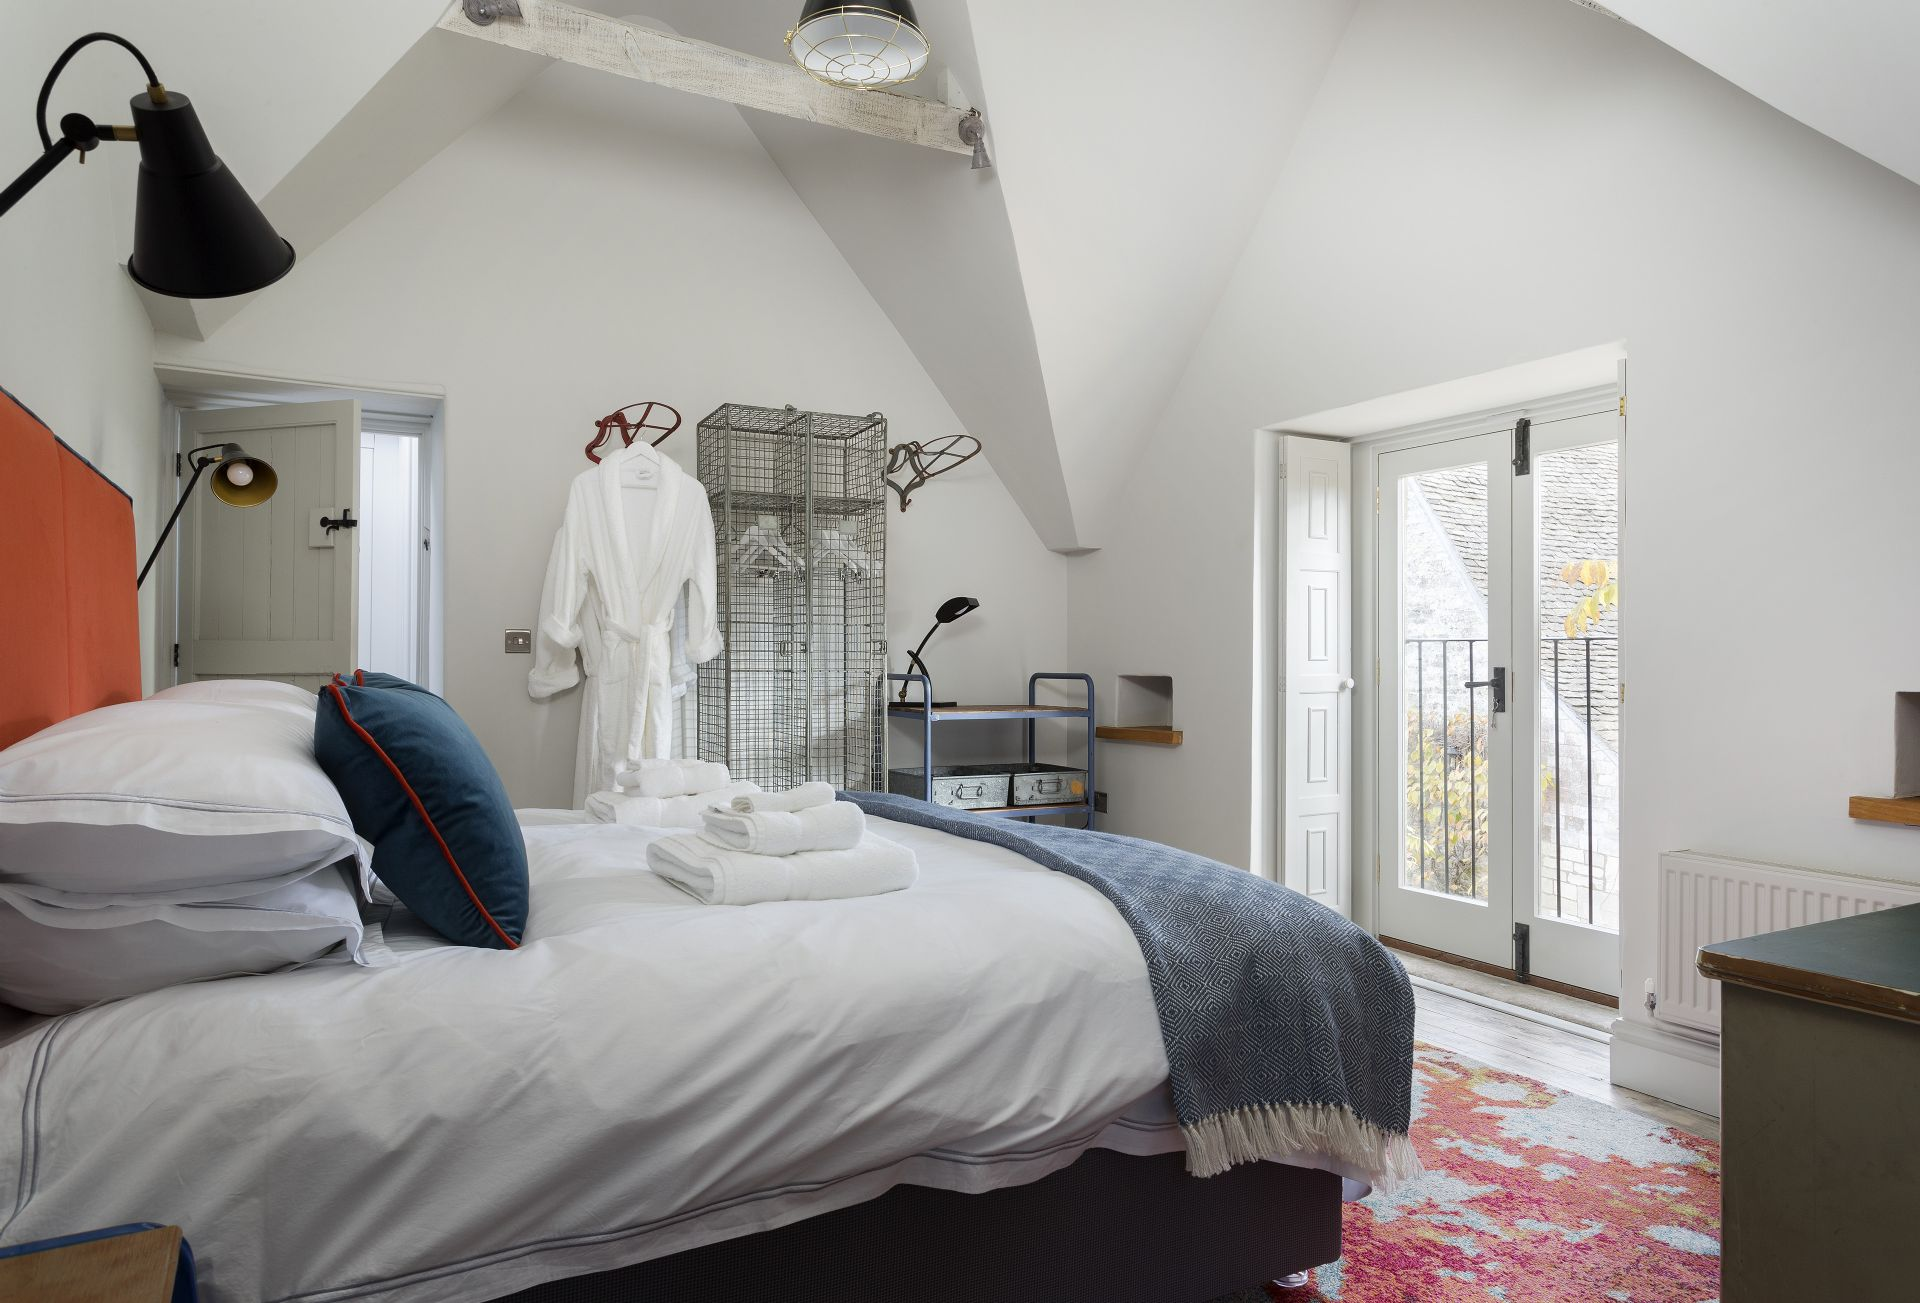 The Stables: First floor bedroom with king-size bed, Juliet balcony and en-suite bathroom